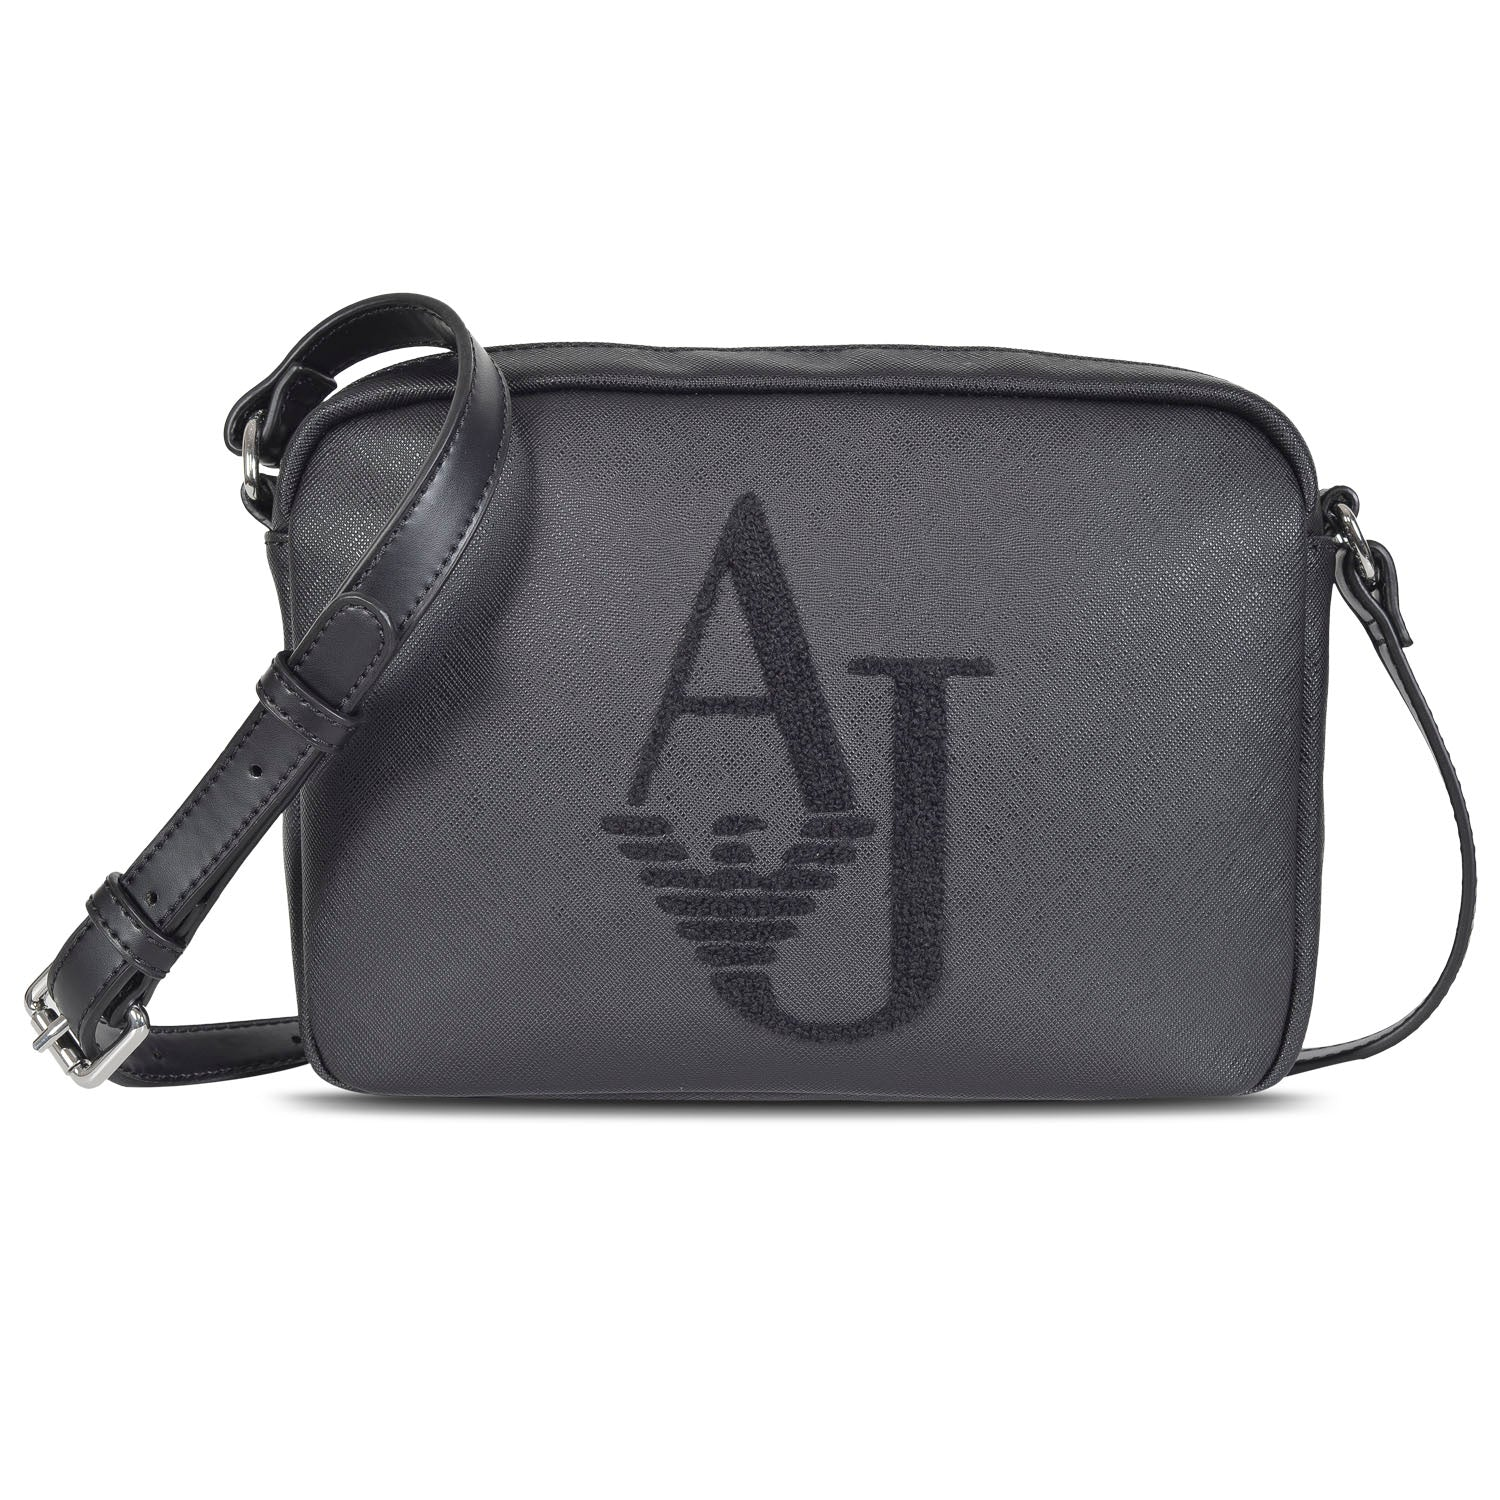 ARMANI DESIGNER WOMEN'S LEATHER pouch SLING BAG